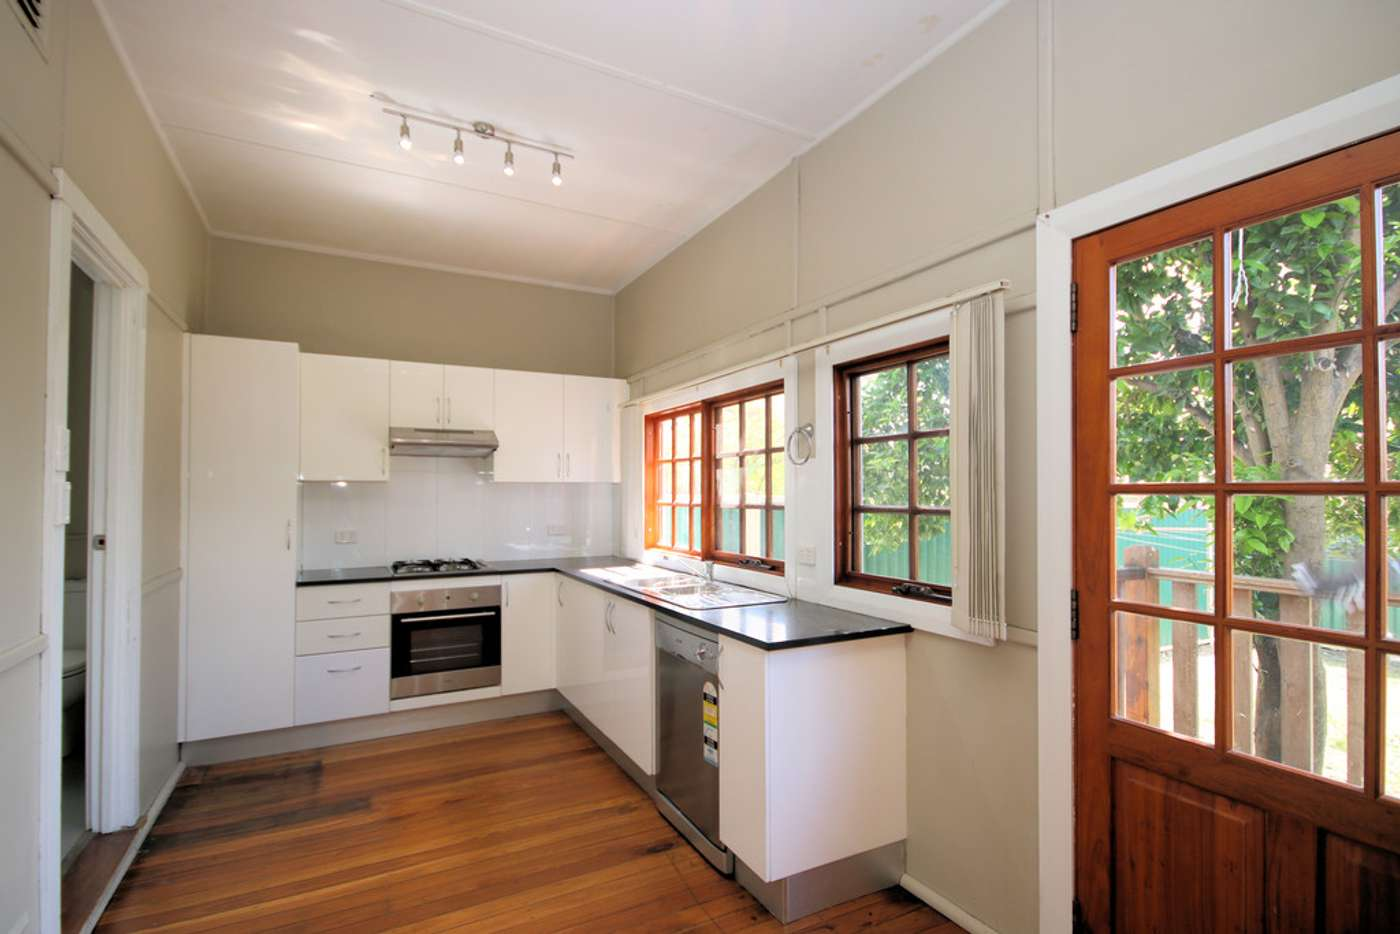 Main view of Homely house listing, 93 Beaconsfield Street, Silverwater NSW 2128